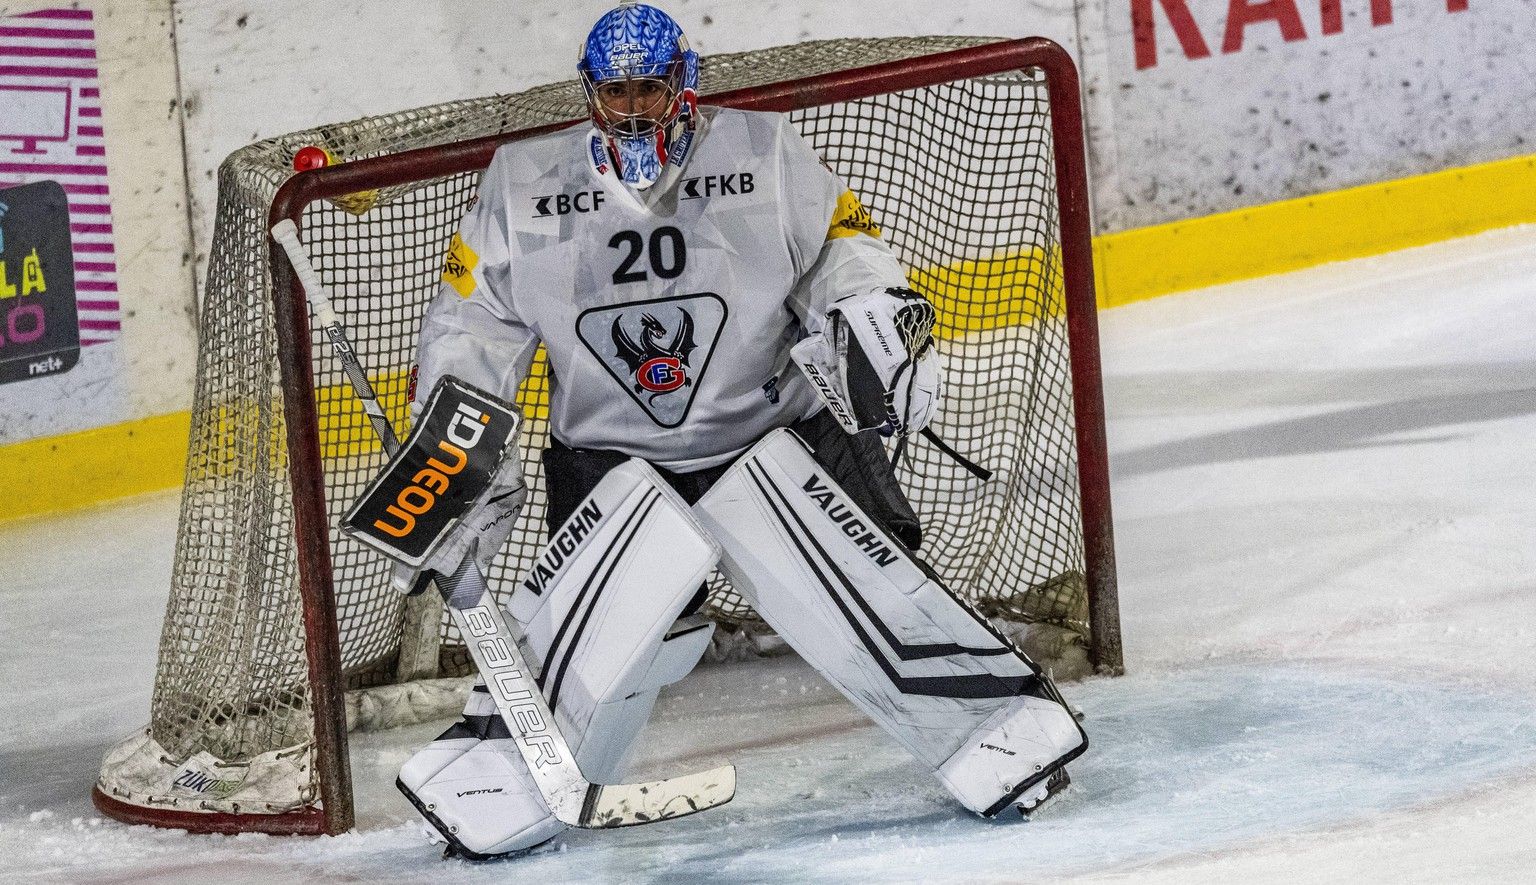 Switzerland: The Coupe des Bains hockey match Yverdon-les-Bains-Switzerland, 08/25/2020: Reto Berra goalkeeper is in action of Hc Fribourg-Gotteron during the Coupe des Bains with Lausanne Hc and Hc Fribourg-Gotteron Yverdon-les-Bains Switzerland Copyright: EricxDubost